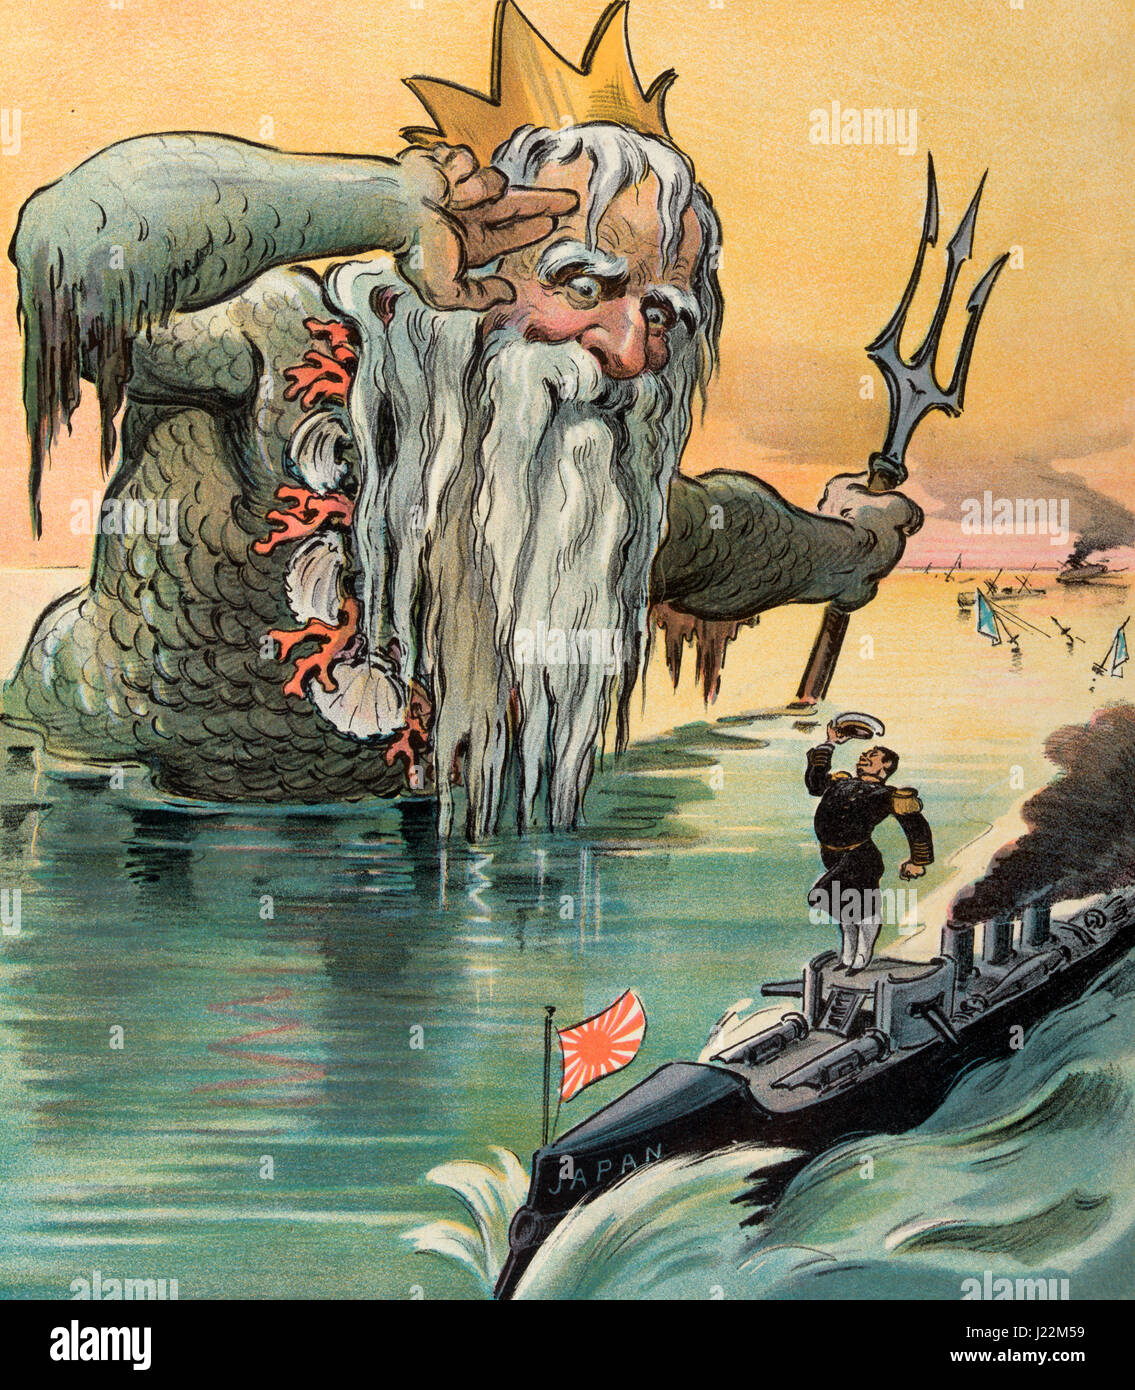 The old salt salutes - Illustration shows Neptune, the Roman god of the sea, saluting a Japanese admiral on a gunboat, - Stock Image